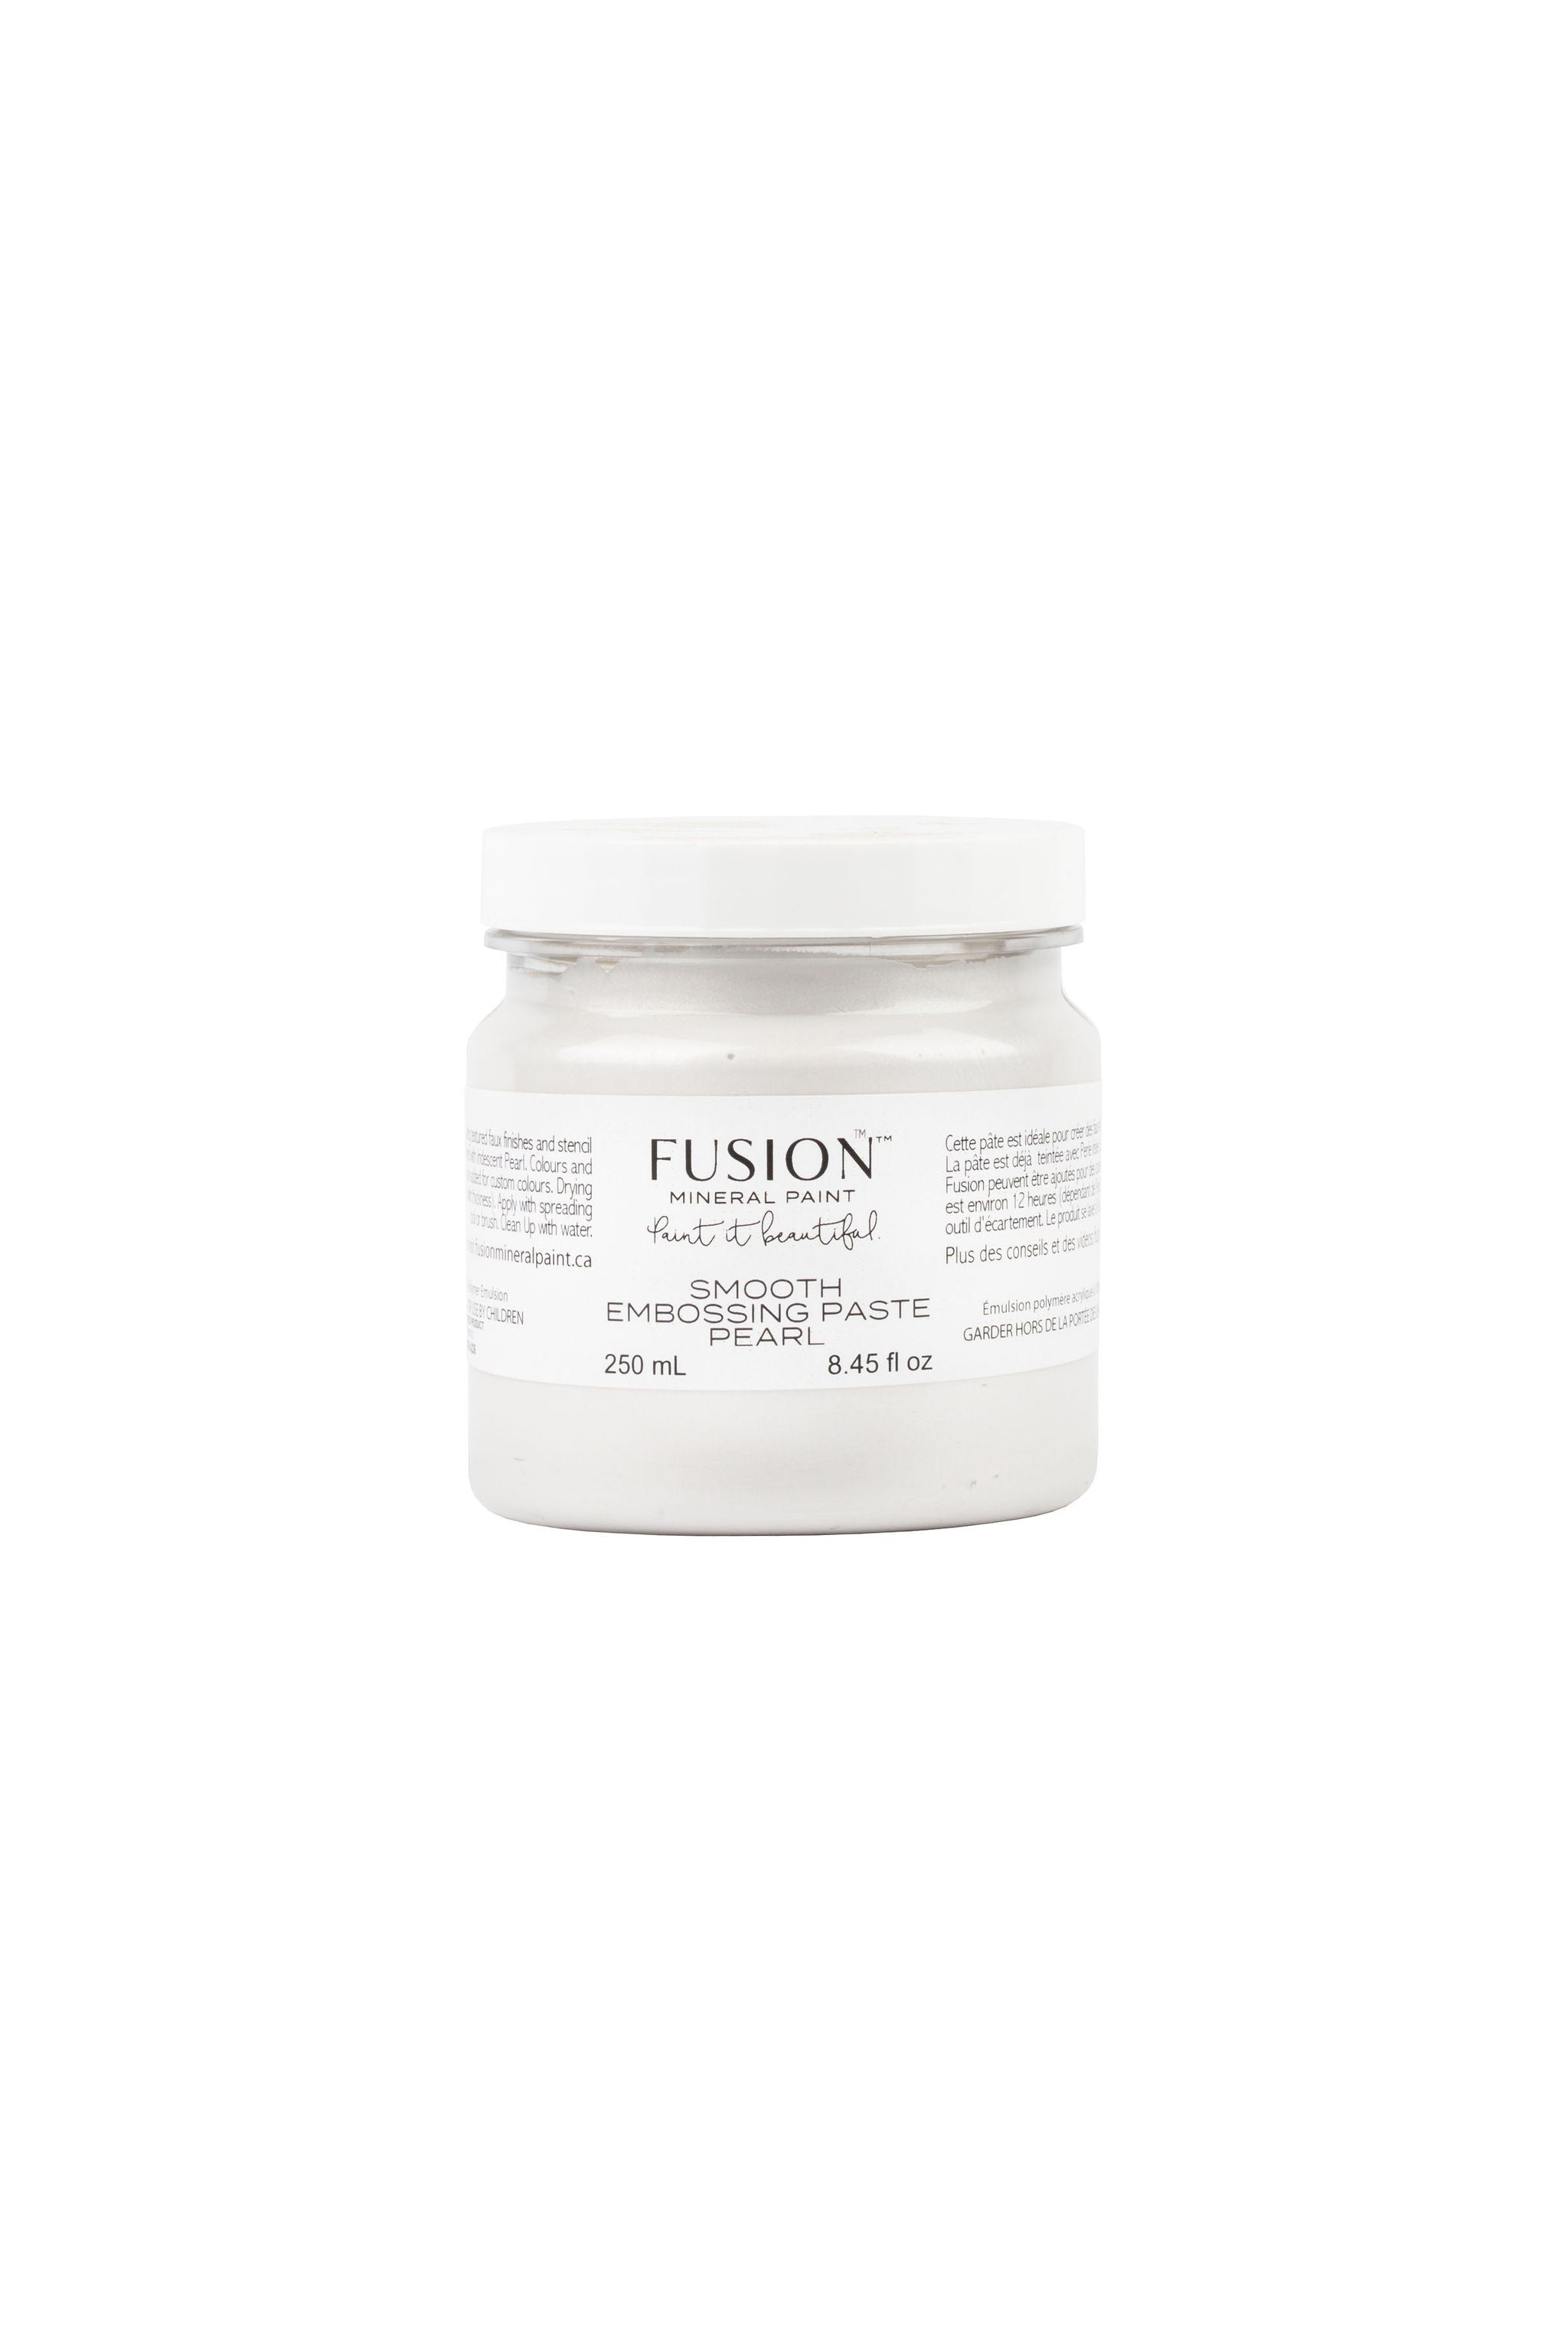 Smooth Embossing Paste - Fusion Mineral Paint - Where to Buy Online - Dear Olympia - Flate Rate US Shipping